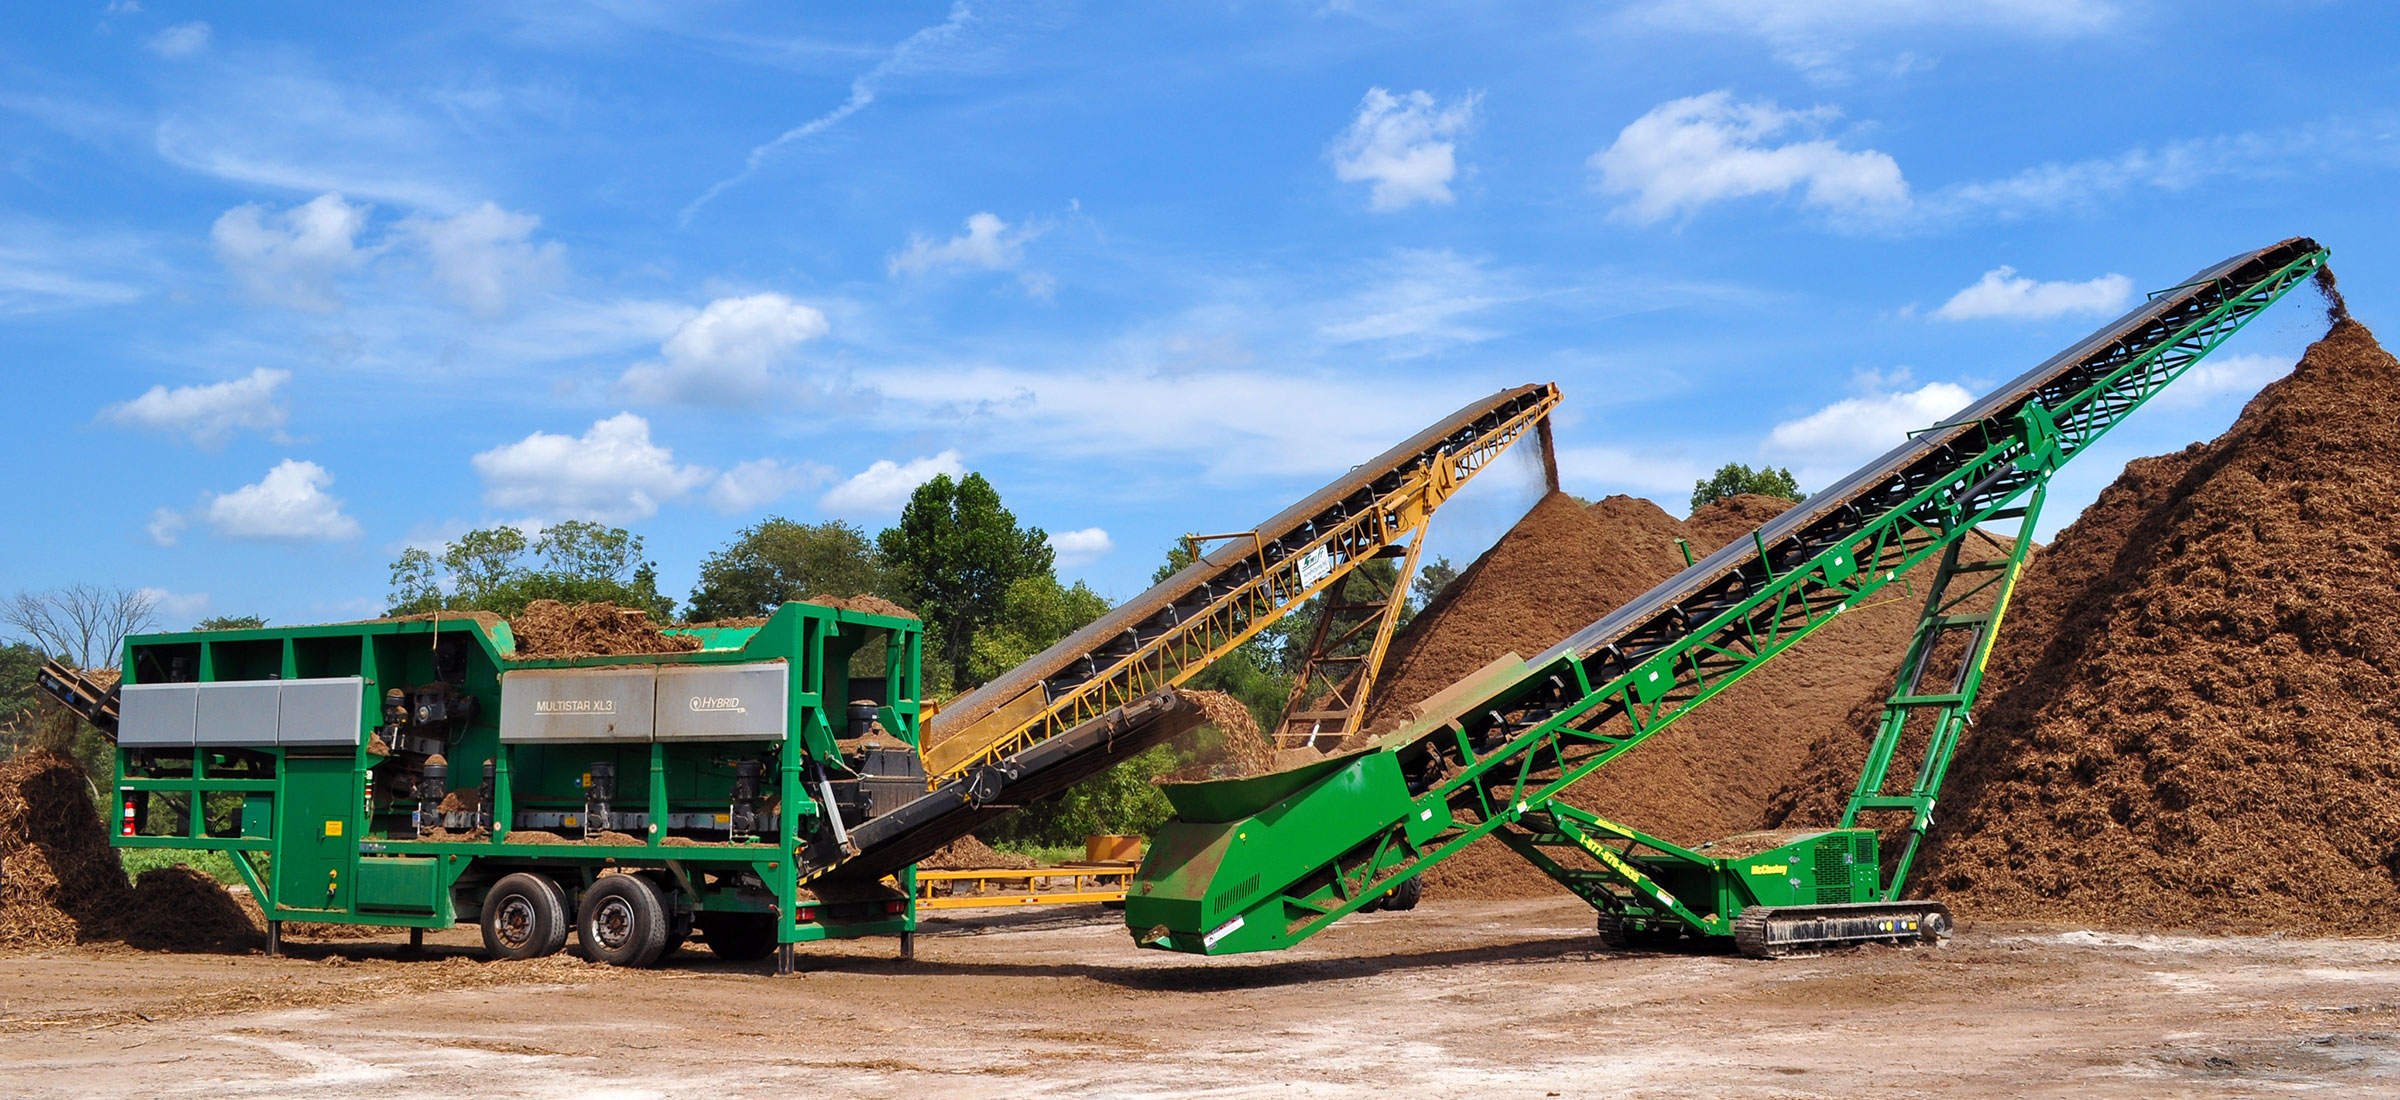 The Komptech Multistar XL3 star screen processing mulch at a commercial mulch facility.